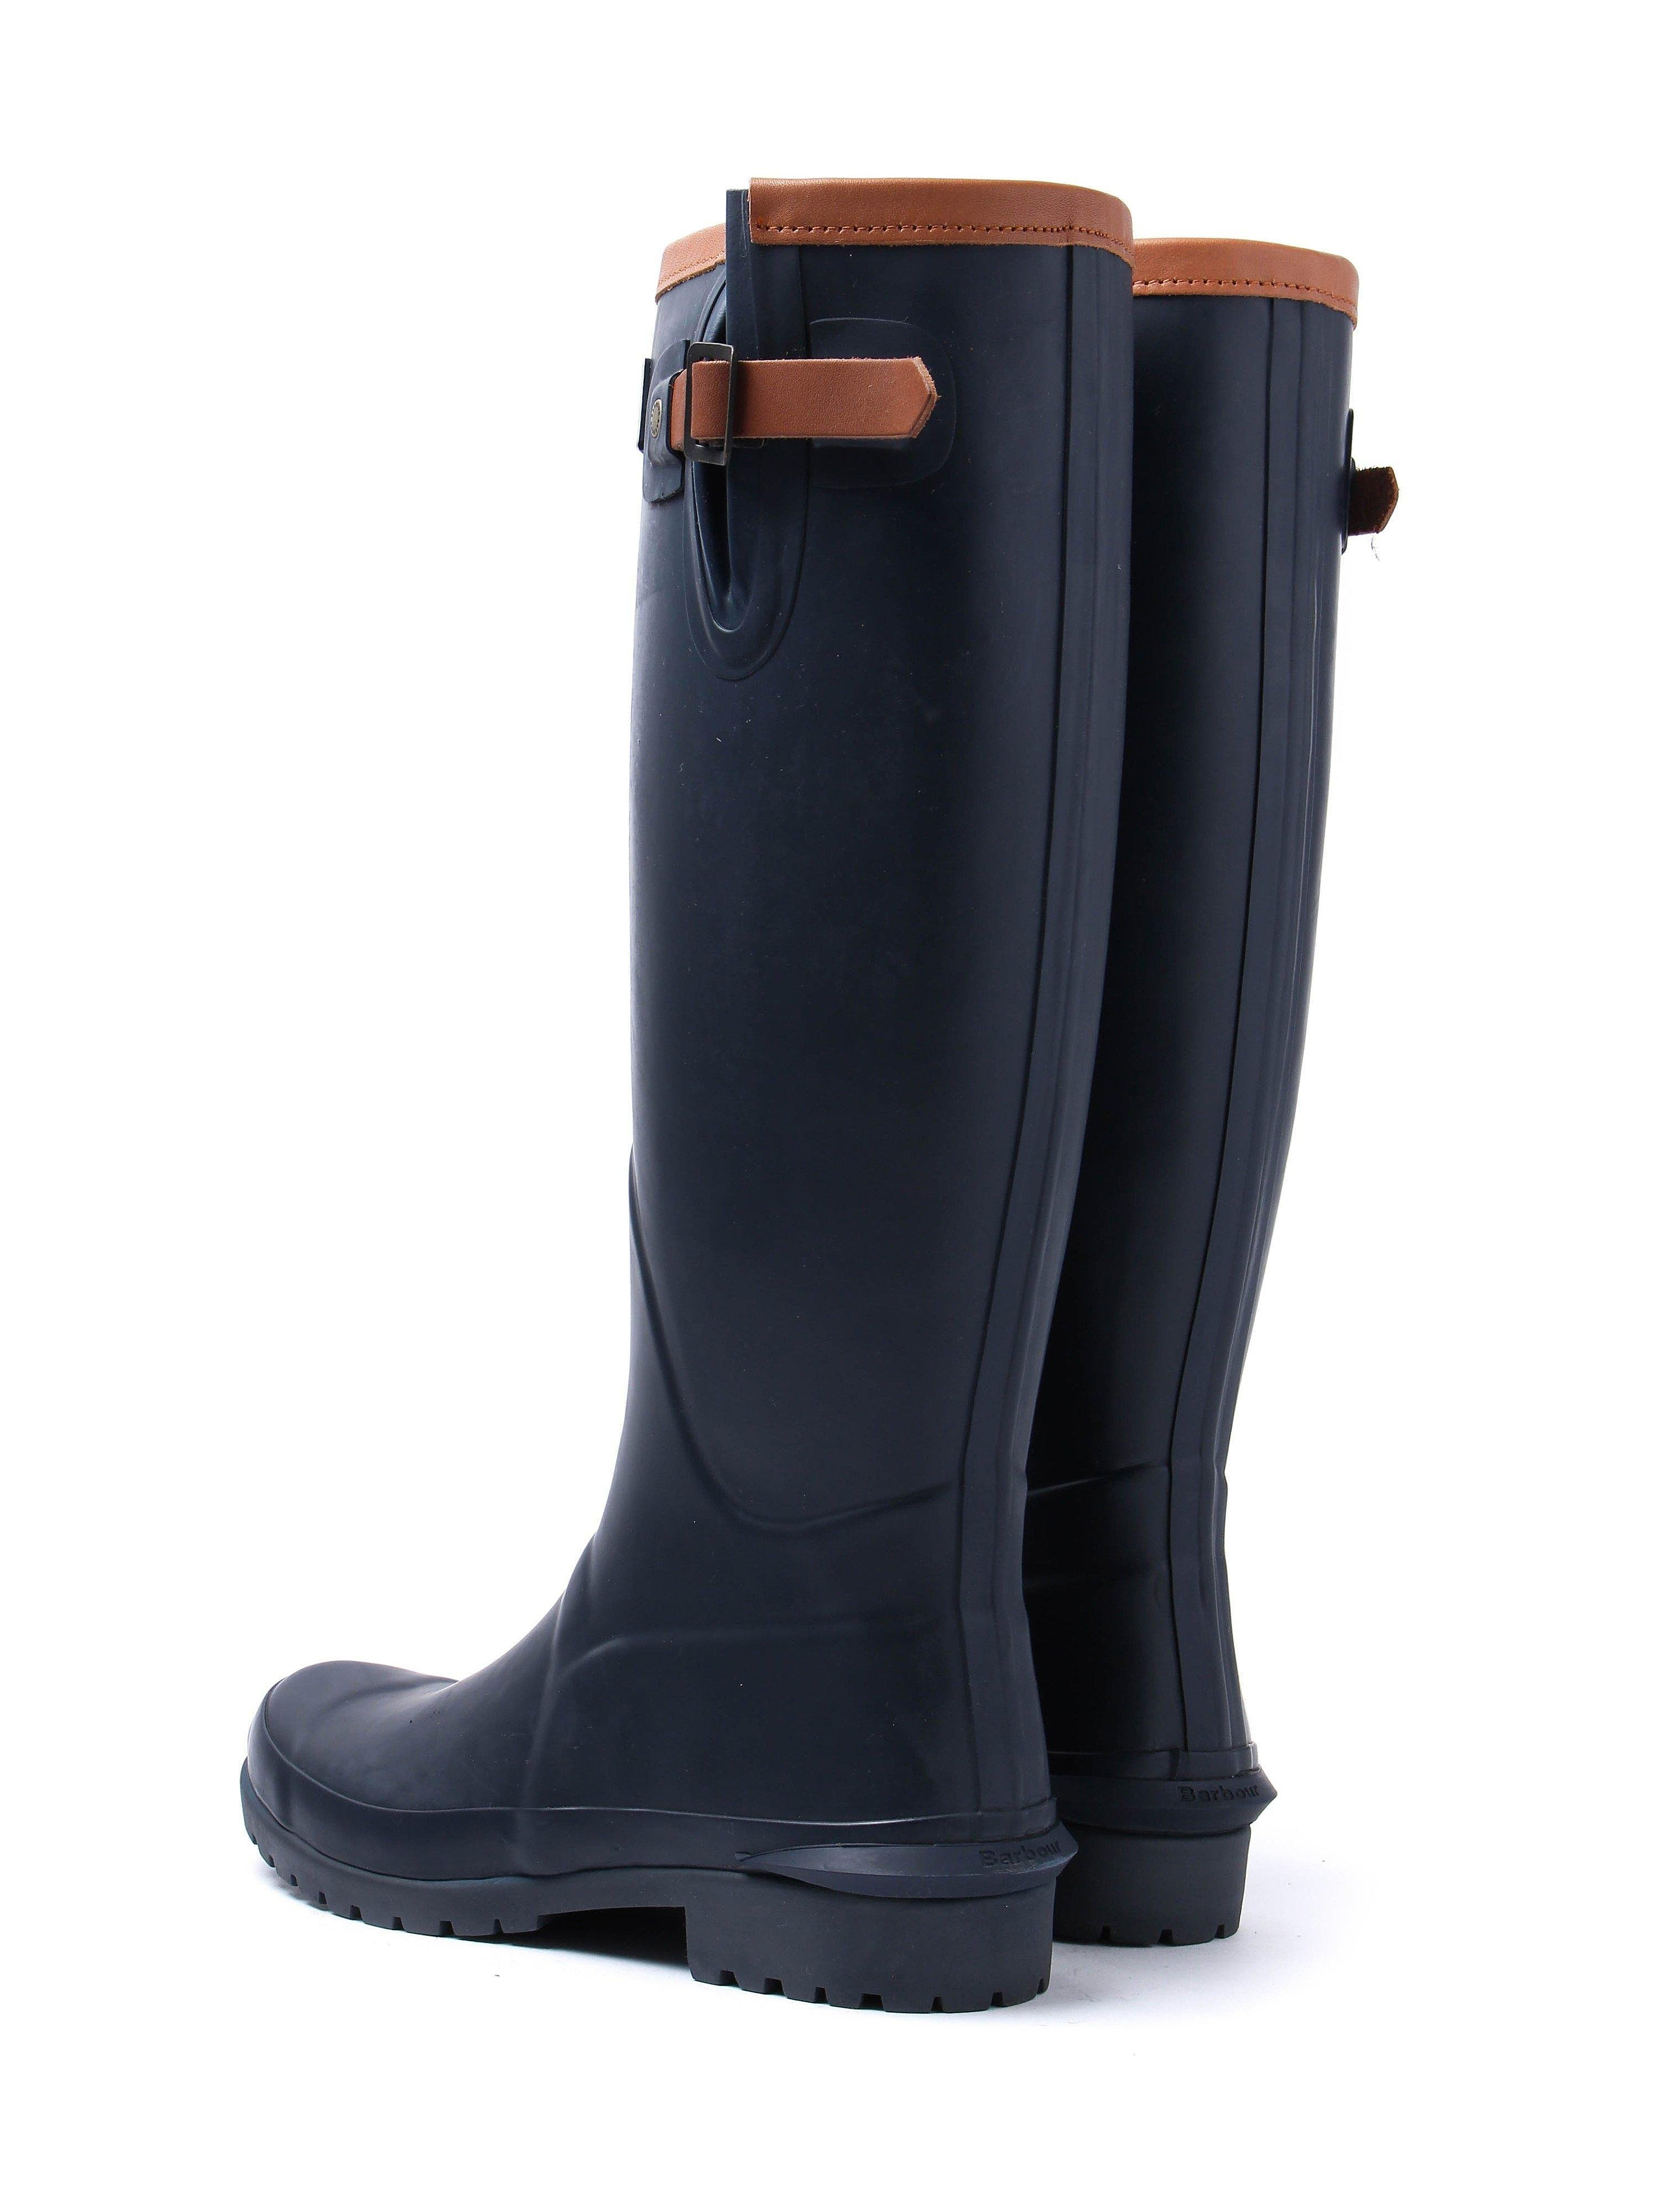 Barbour Women's Blyth Wellingtons Boots - Navy